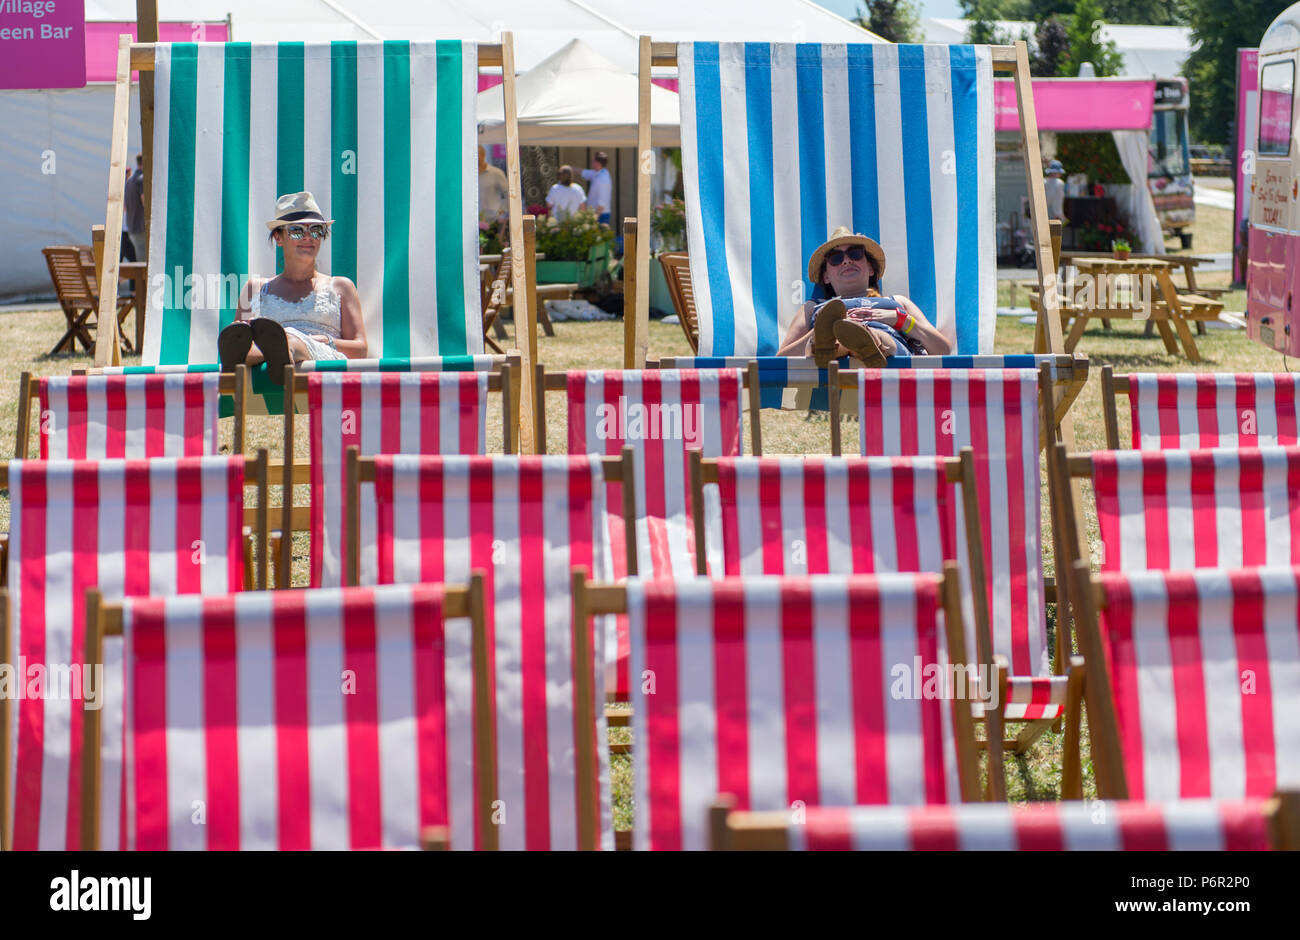 Hampton Court Palace, Surrey, UK. 2 July, 2018. The world's largest annual flower show, RHS Hampton Court Palace Flower Show supported by Viking Cruises, opens to the public from 5 - 8 July 2018. Press day opens in scorching sun. Credit: Malcolm Park/Alamy Live News. Stock Photo